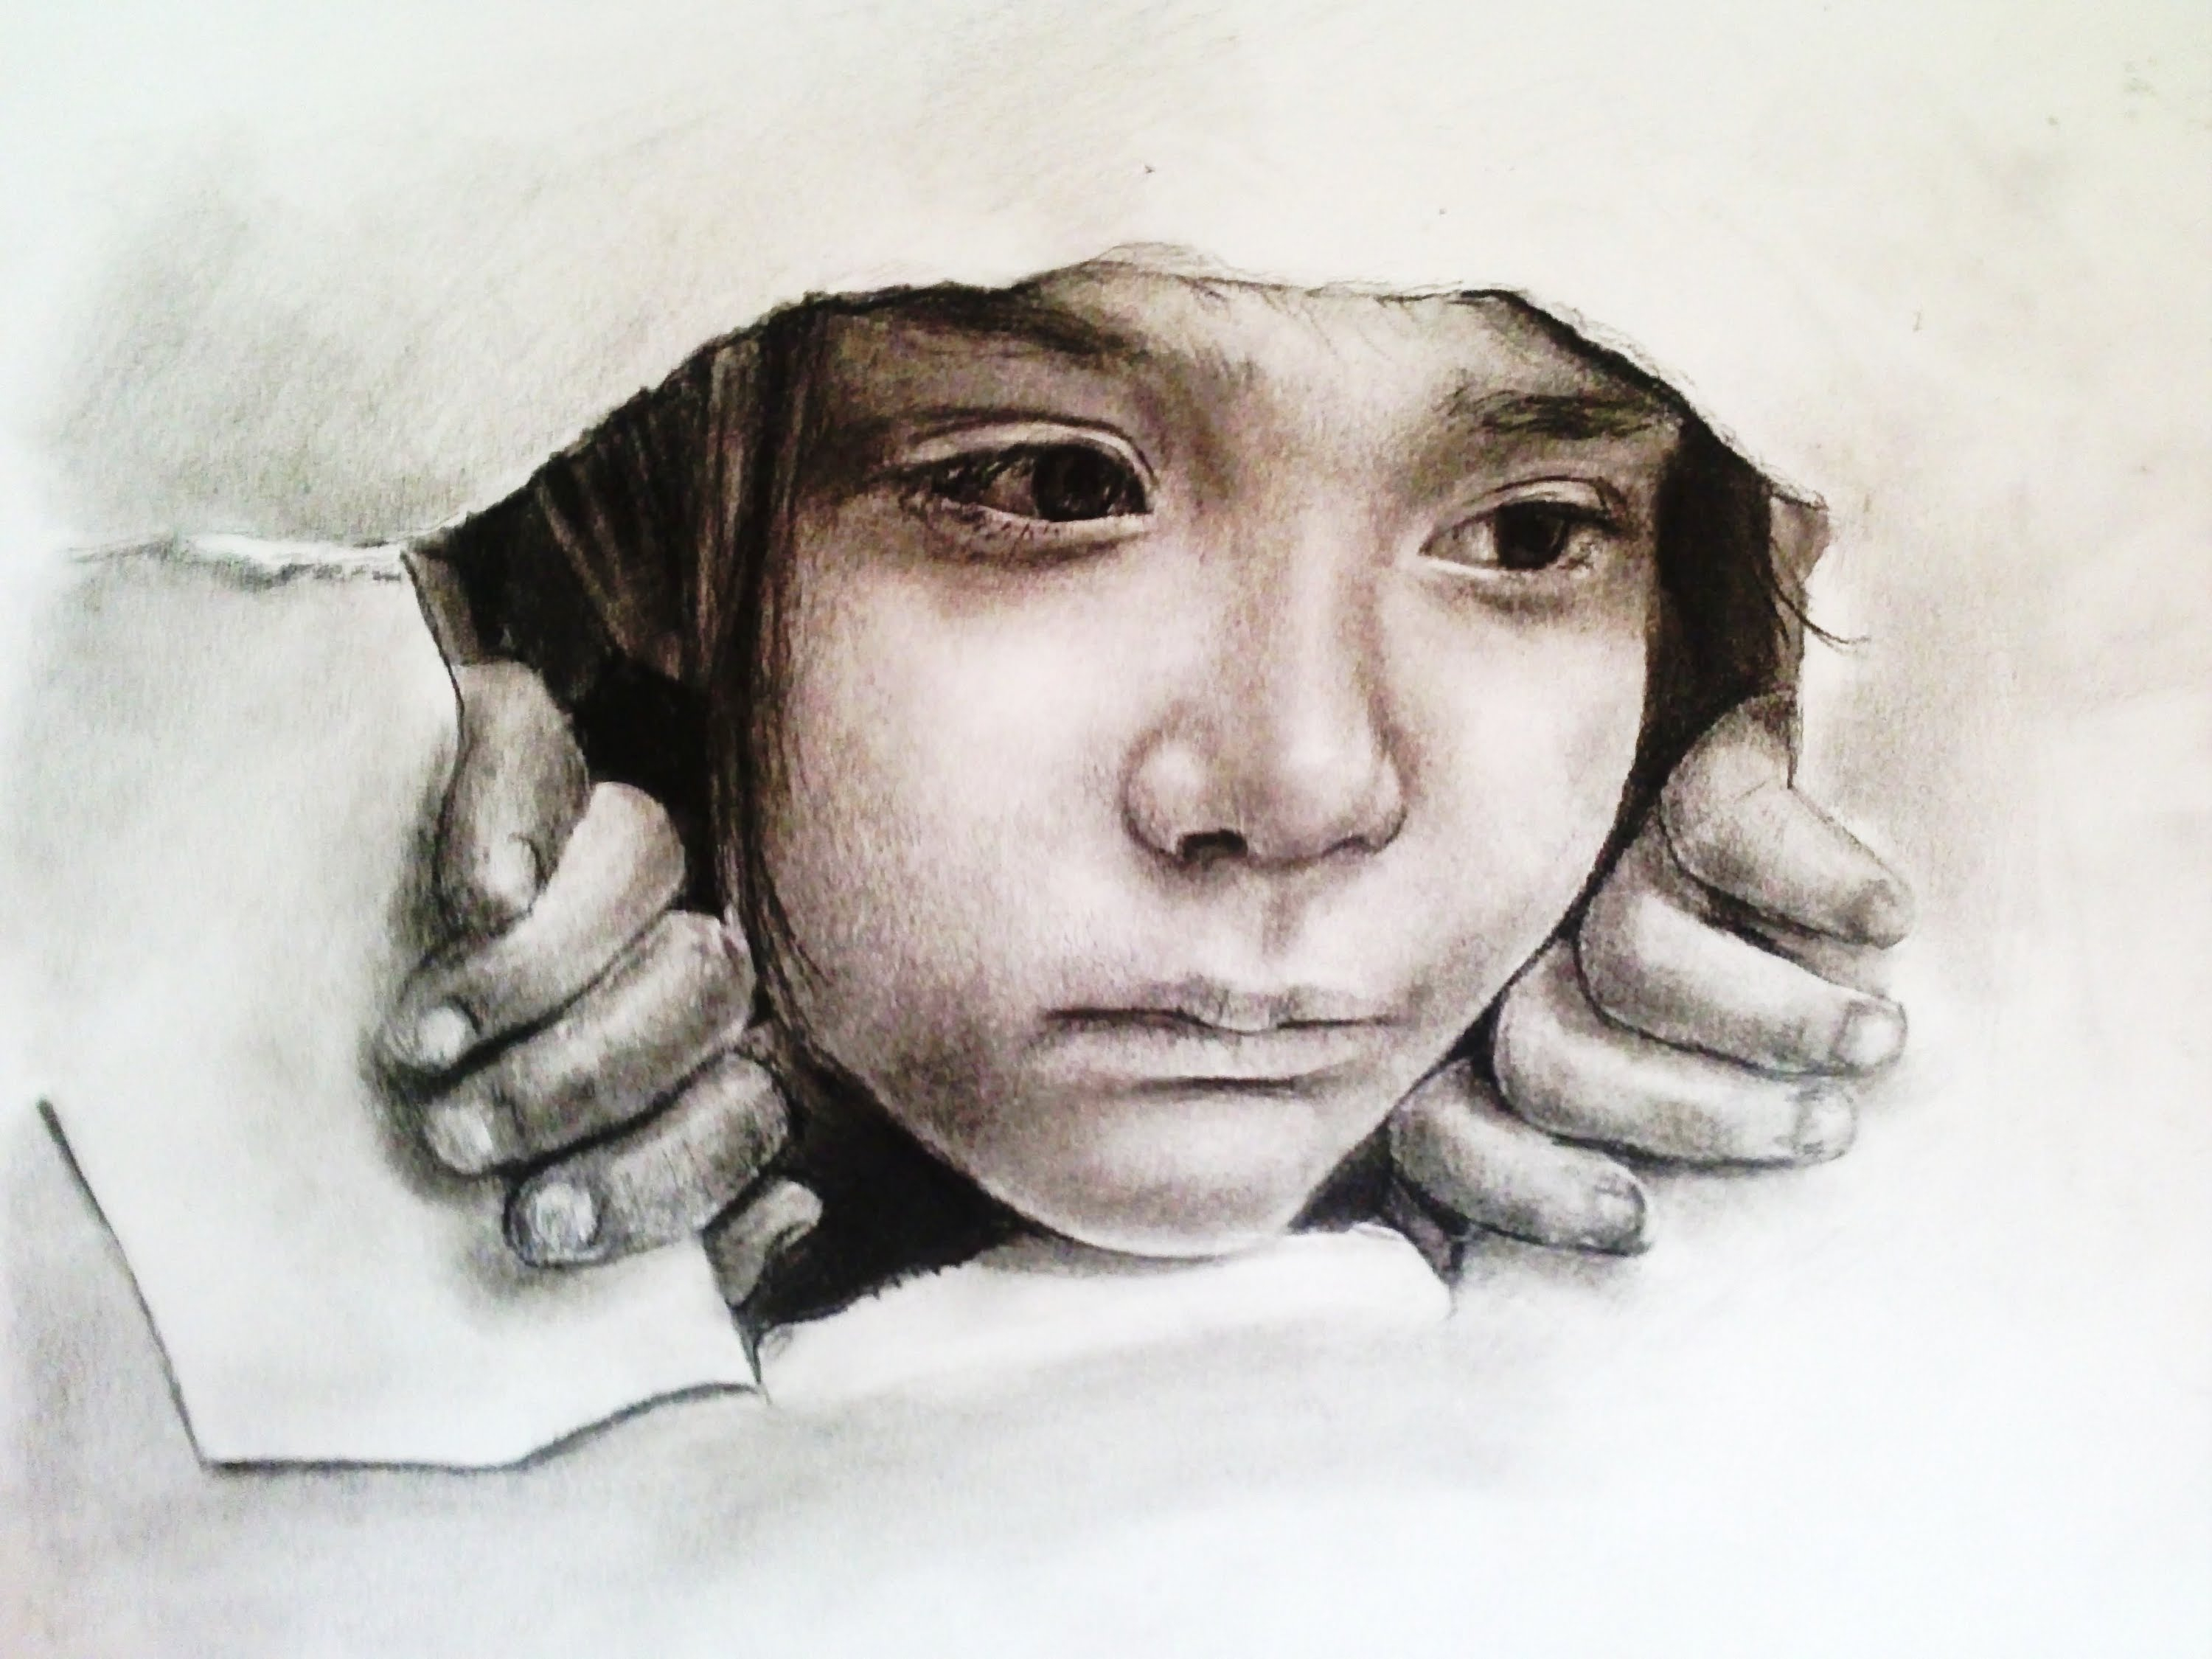 human face pencil drawing at getdrawings com free for personal use